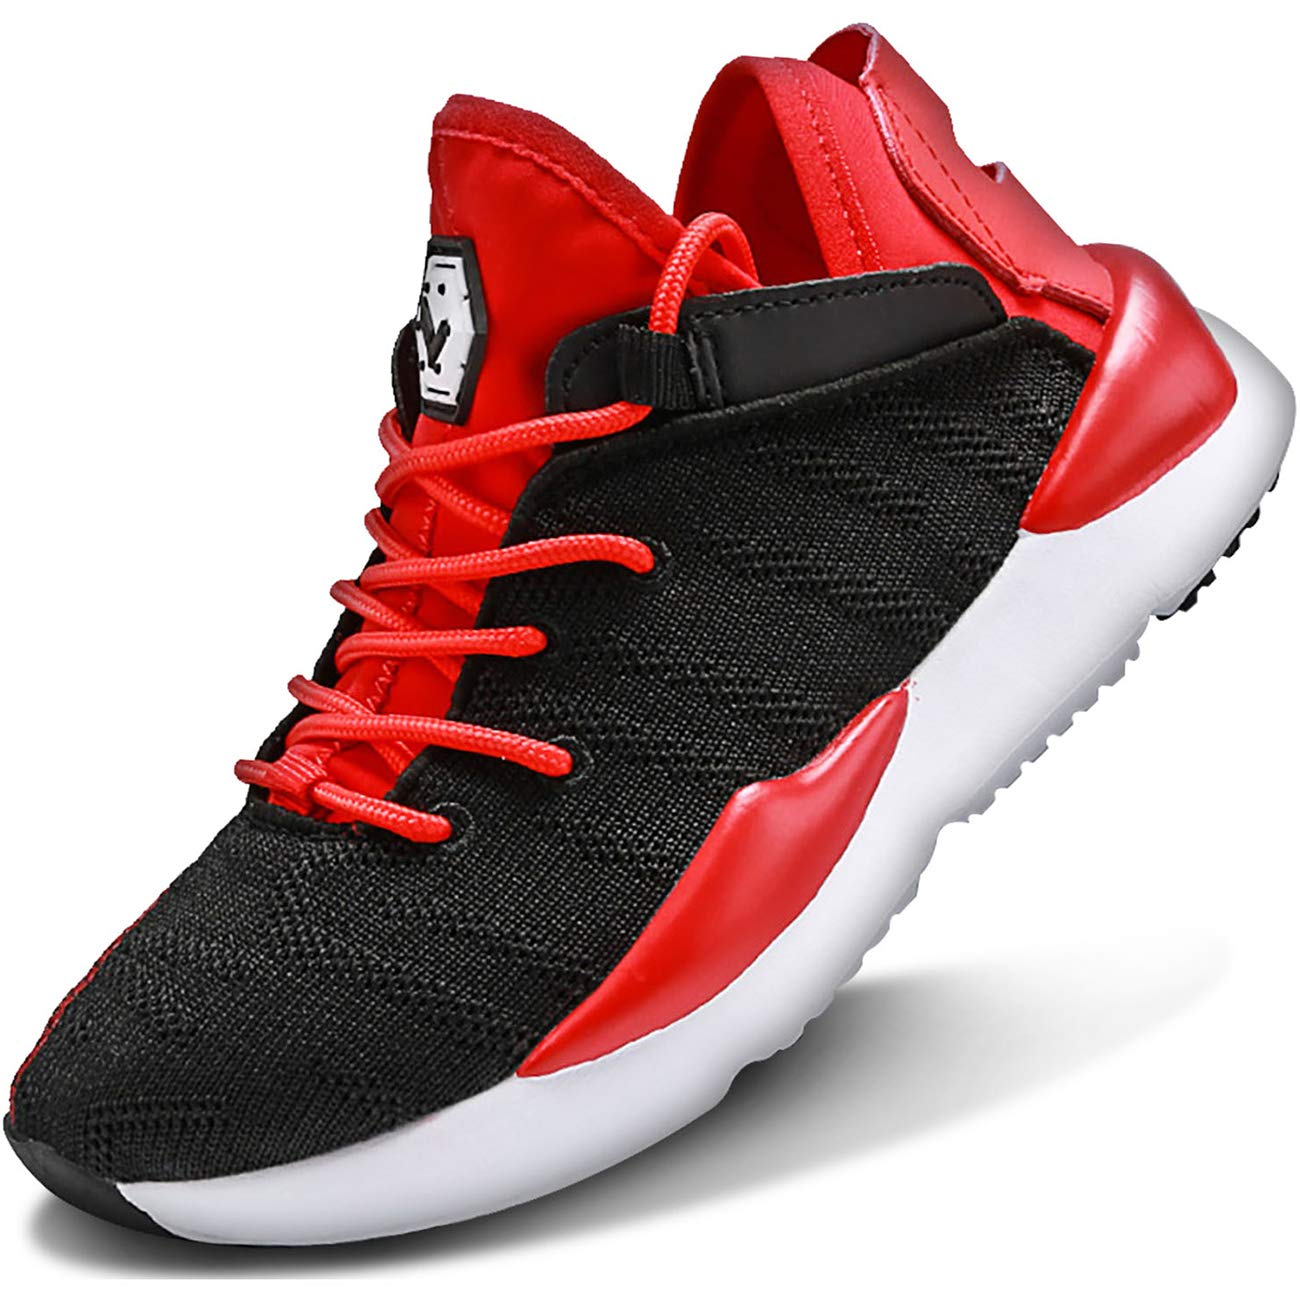 HTHJSCO Womens Breathable Mesh Tennis Athletic Lace up Fashion Walking Comfort Lightweight Running Sneakers Sports Shoes